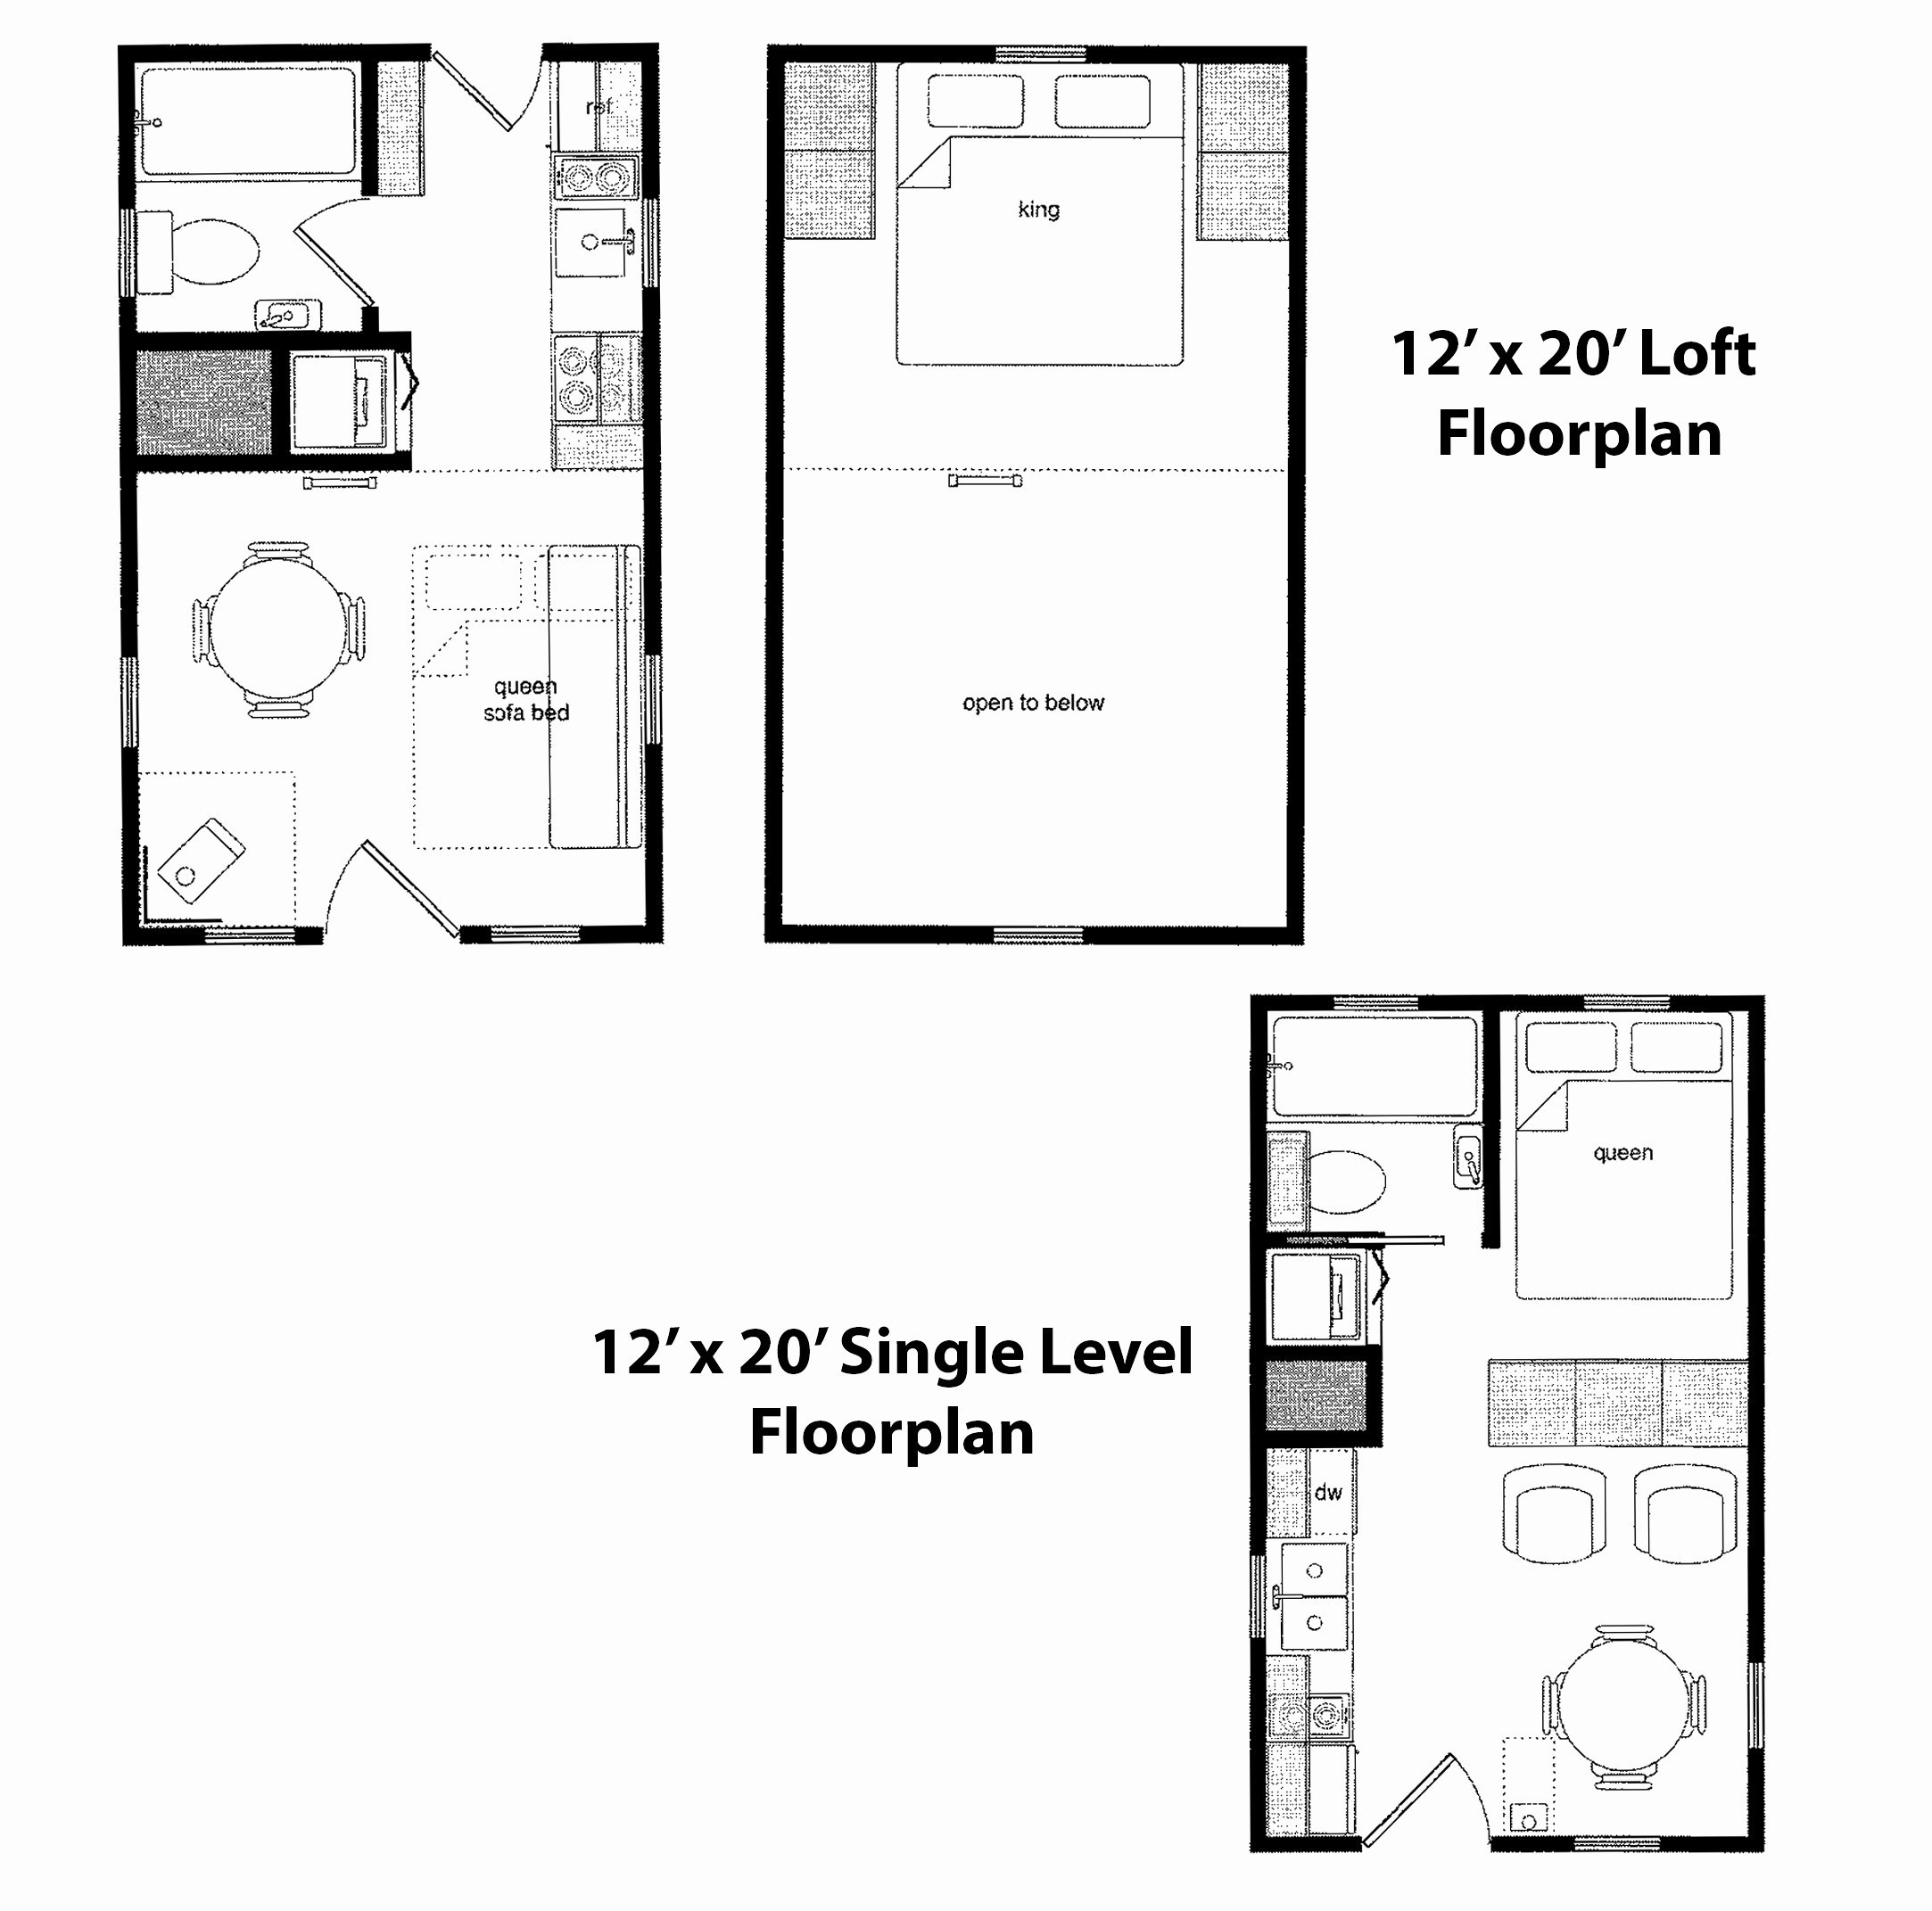 21 Inspirational Ice Fishing House Plan Architecture – Floor Plan Design - Ice Castle Trailer Wiring Diagram